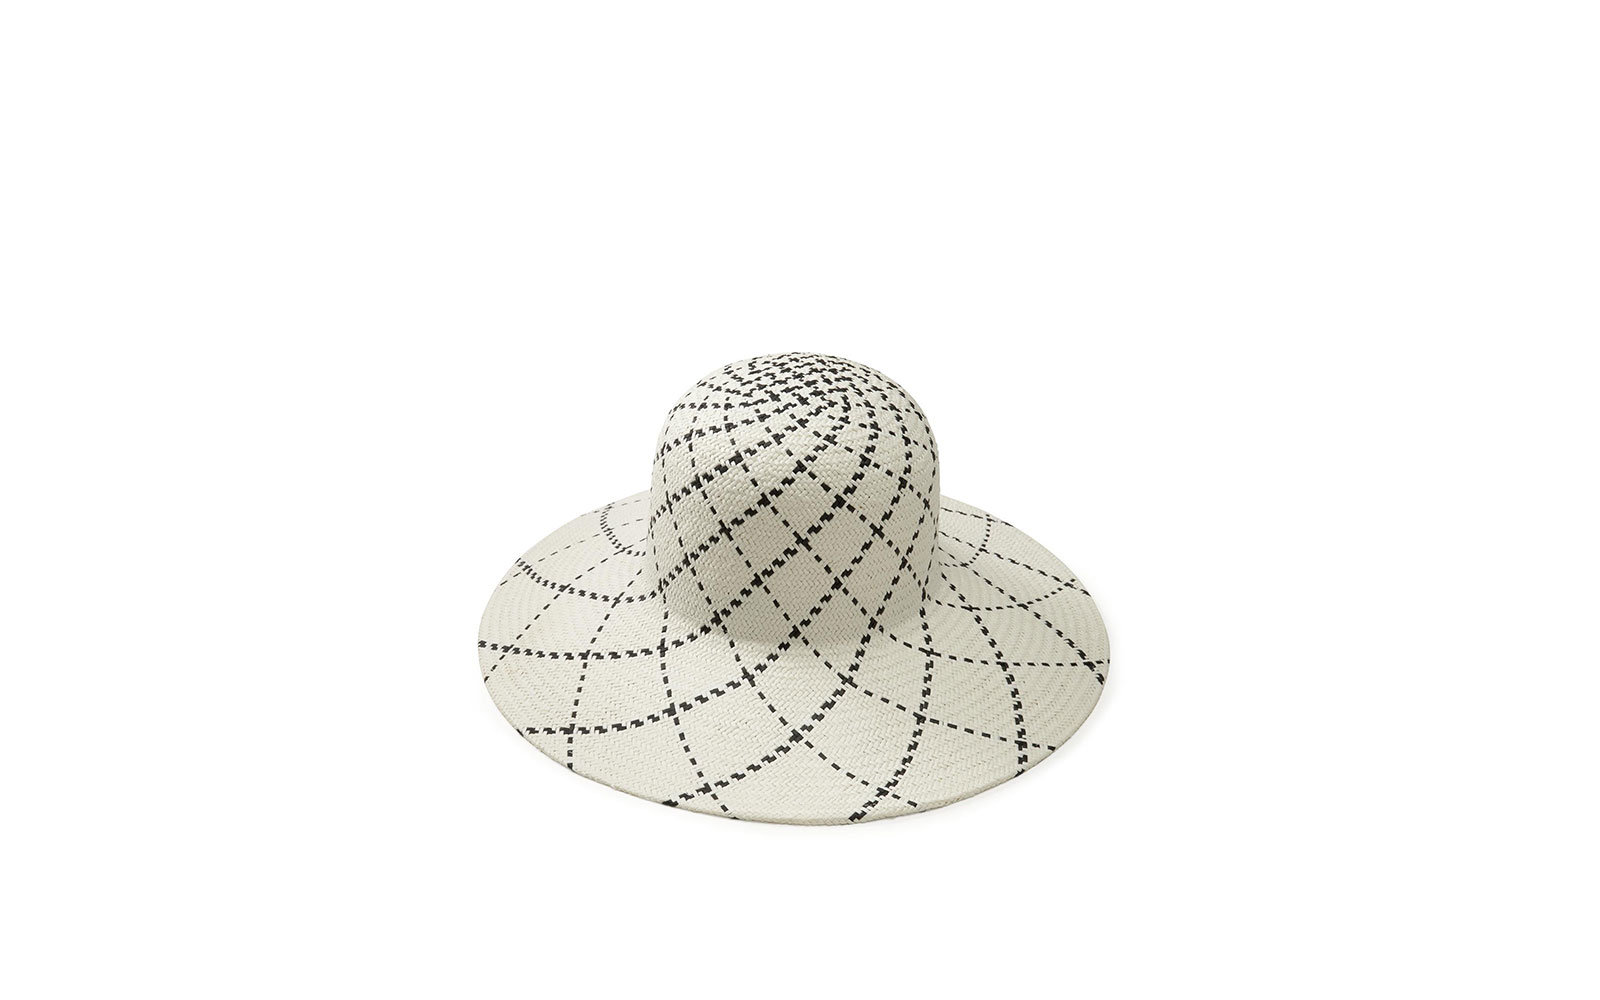 Banana Republic sun hat